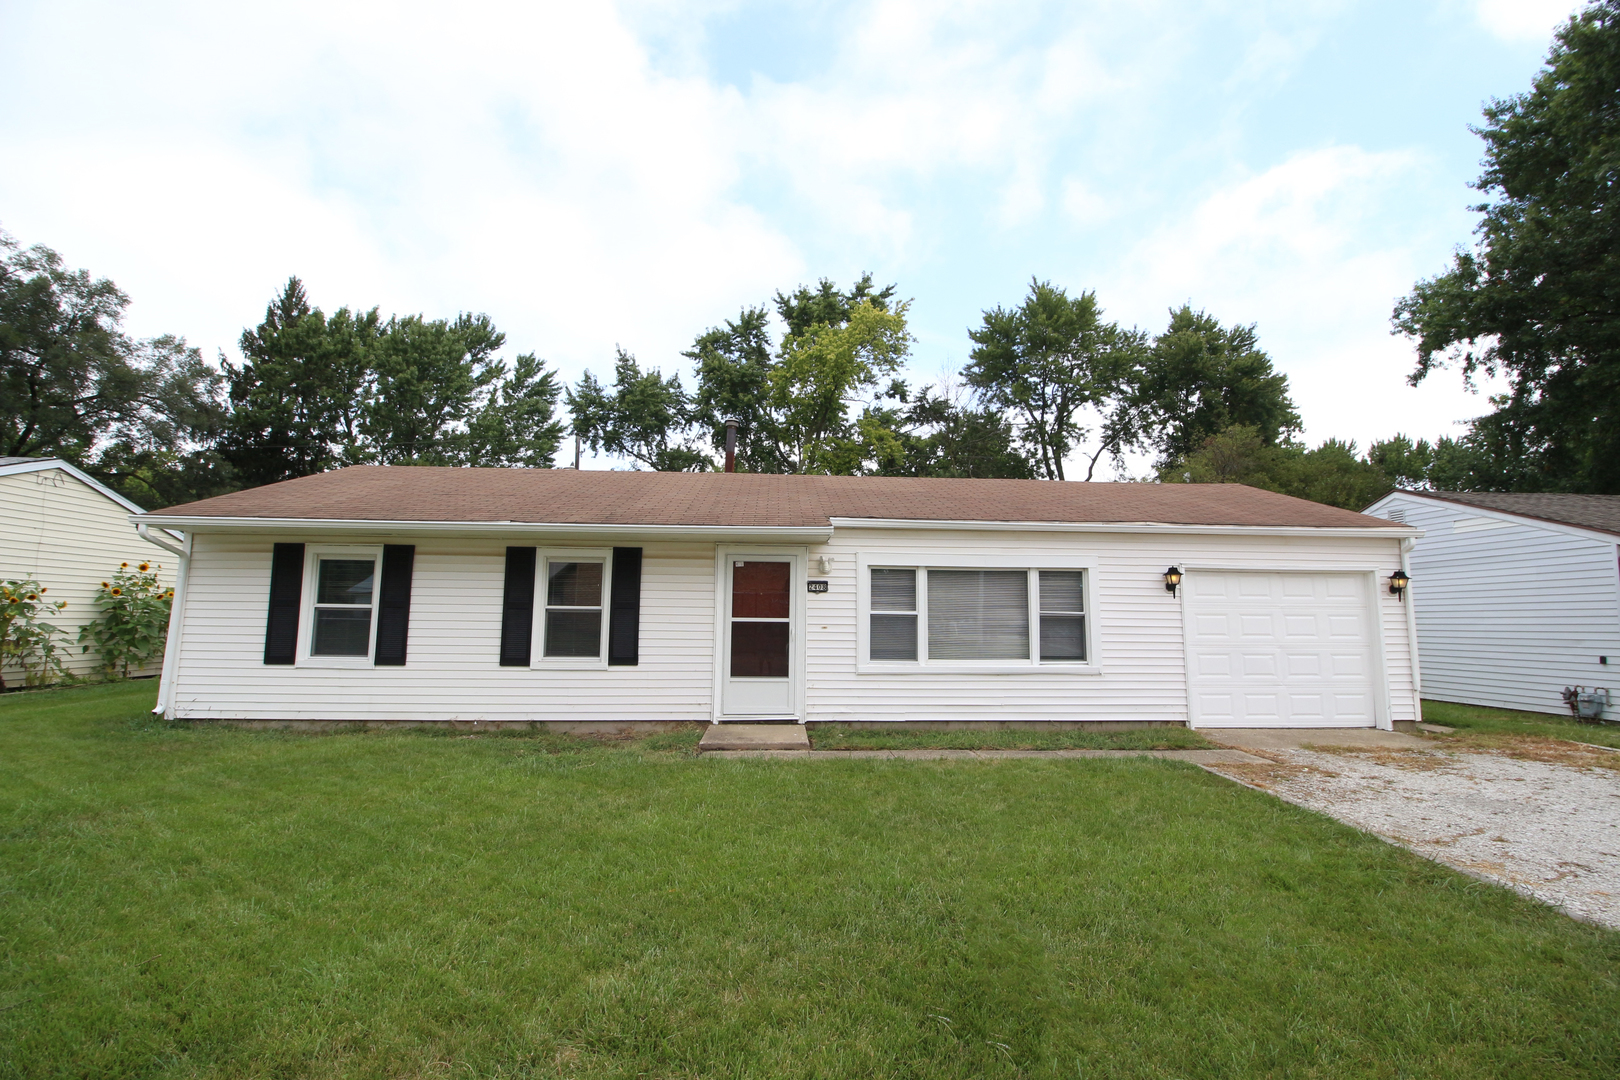 2408 West KIRBY Avenue, Champaign in Champaign County, IL 61821 Home for Sale